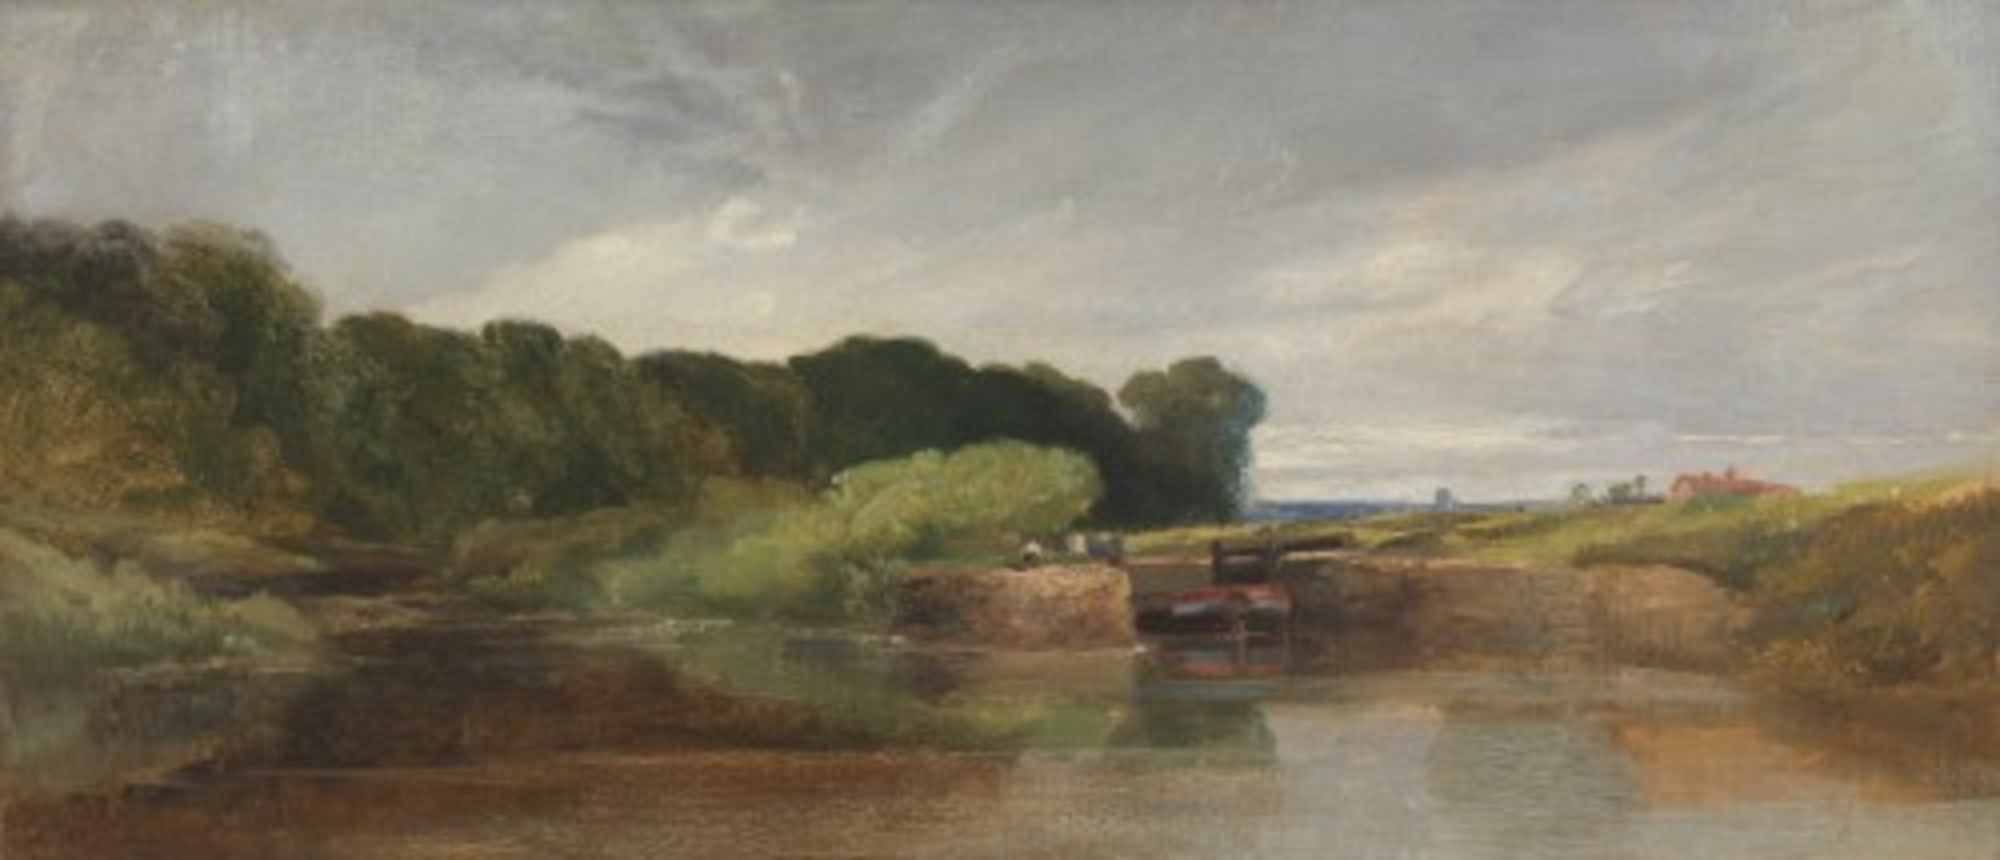 William-James-Muller---Hanham-Lock-on-the-Avon---Google-Art-Project.jpg